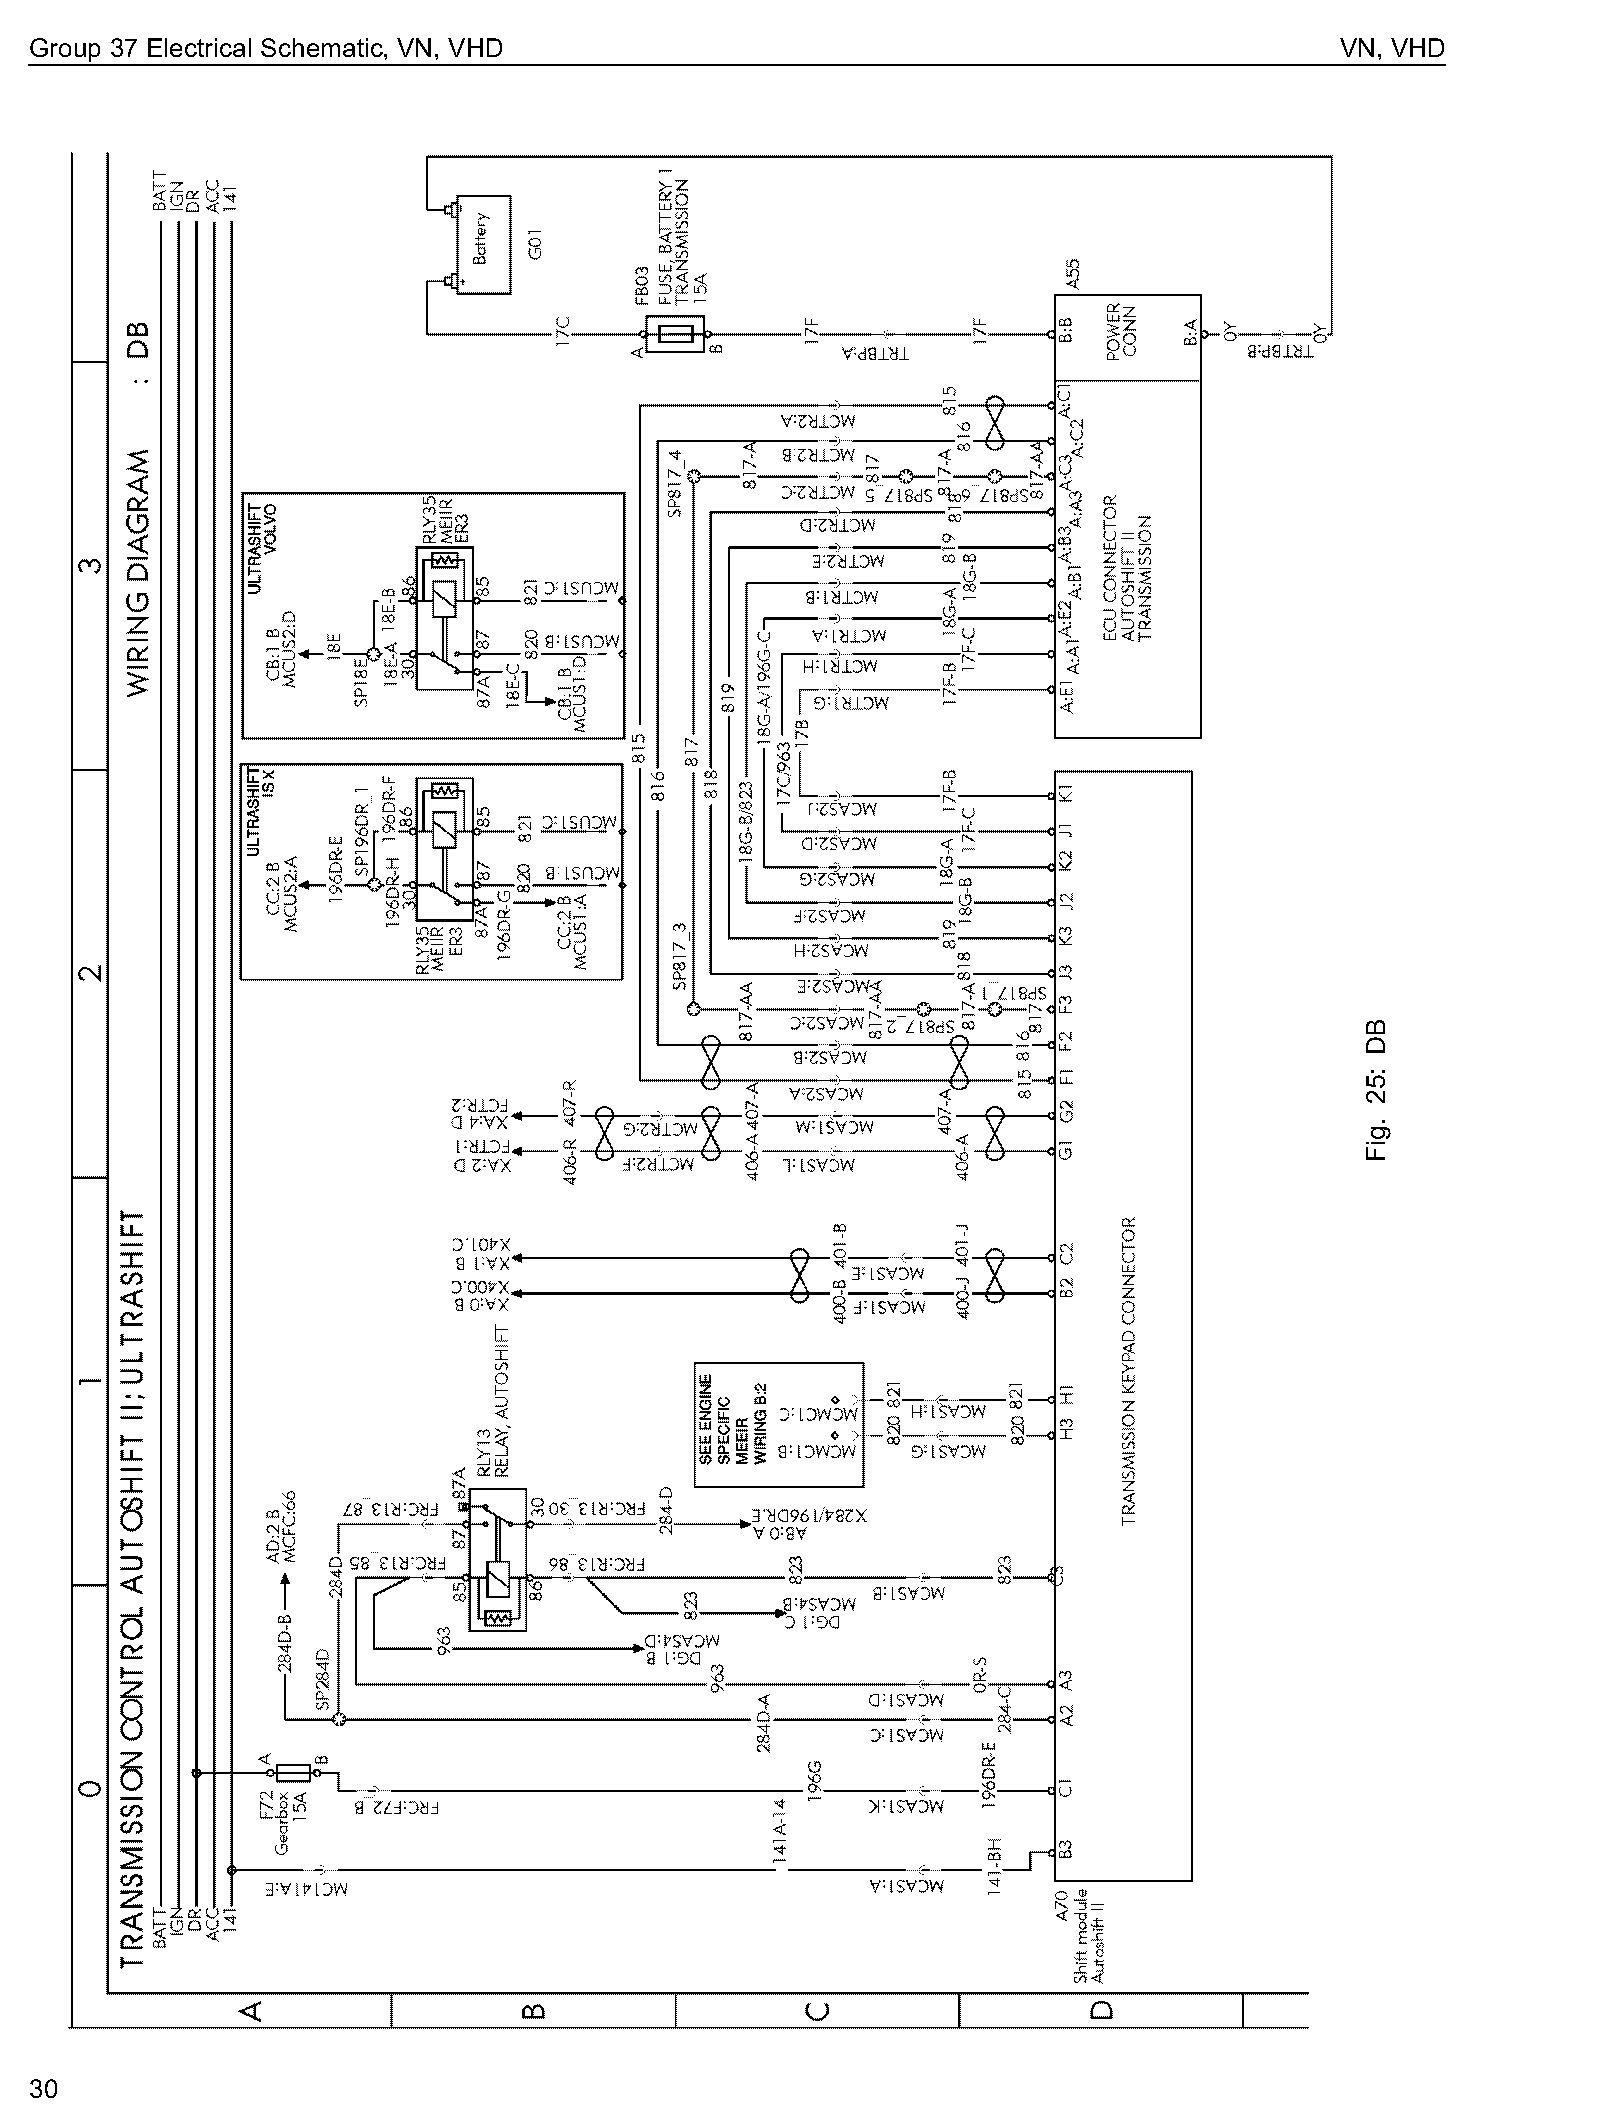 2011 12 29_151315_12 29 2011_9 39 43_am my truck is a 2006 volvo vnl680 with a rto16910dm3 transmission eaton autoshift wiring diagram at n-0.co